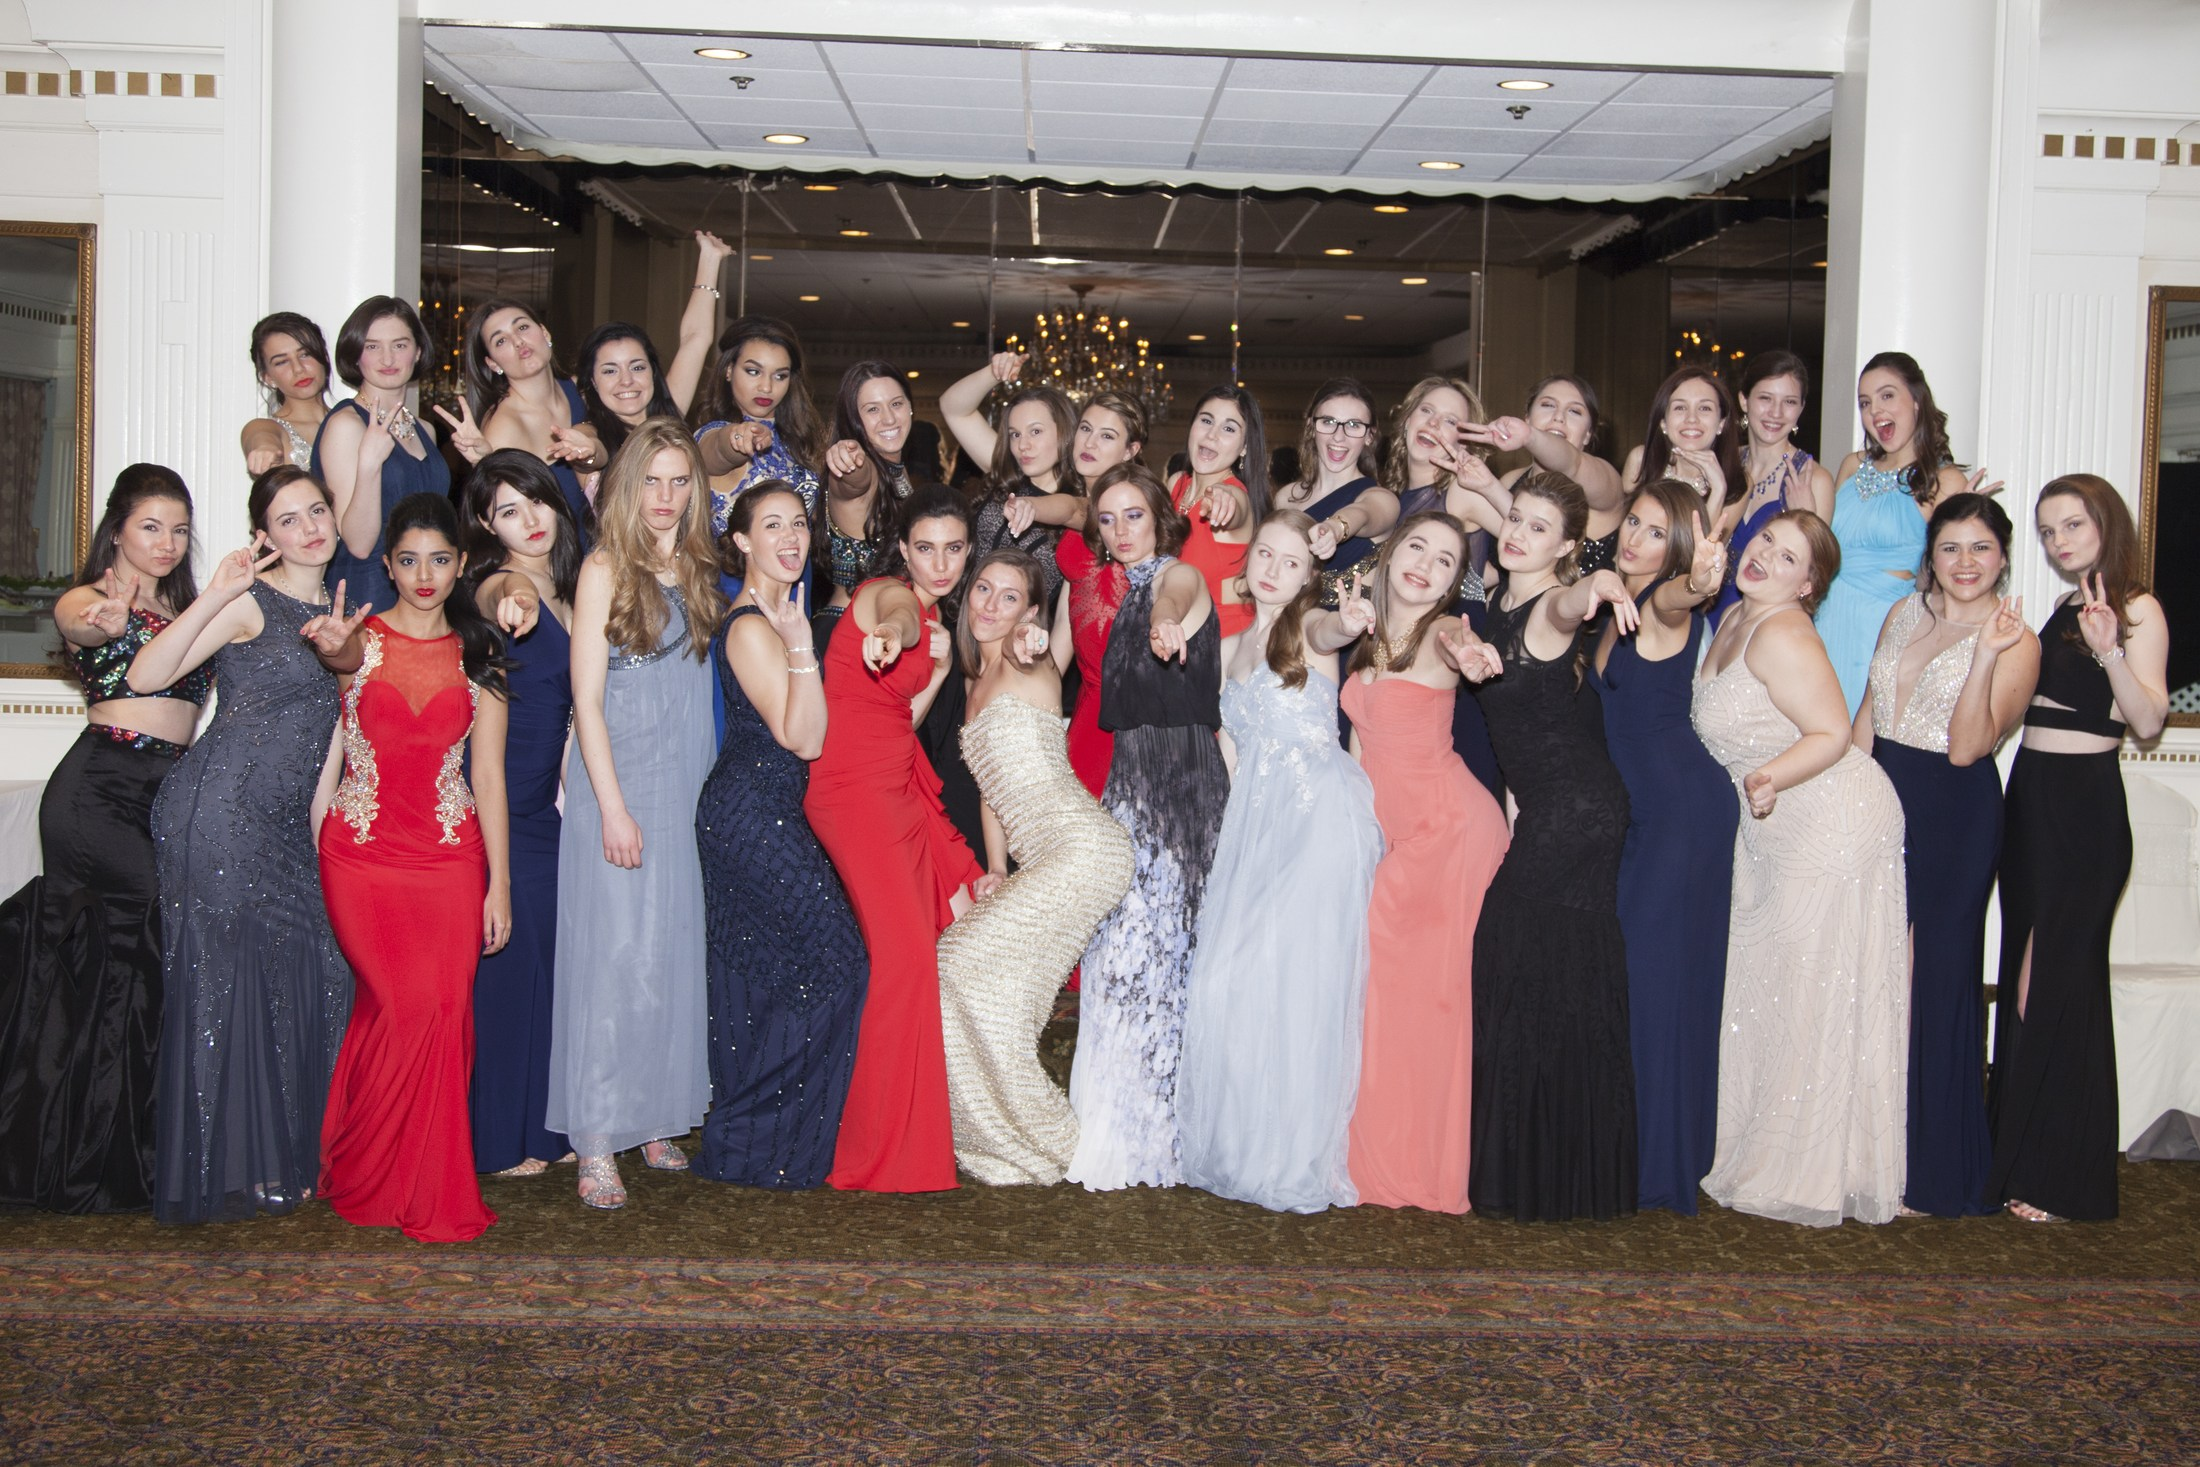 Image Of Students From Catholic High School Ready For Prom In Morristown, NJ - Academy of St. Elizabeth